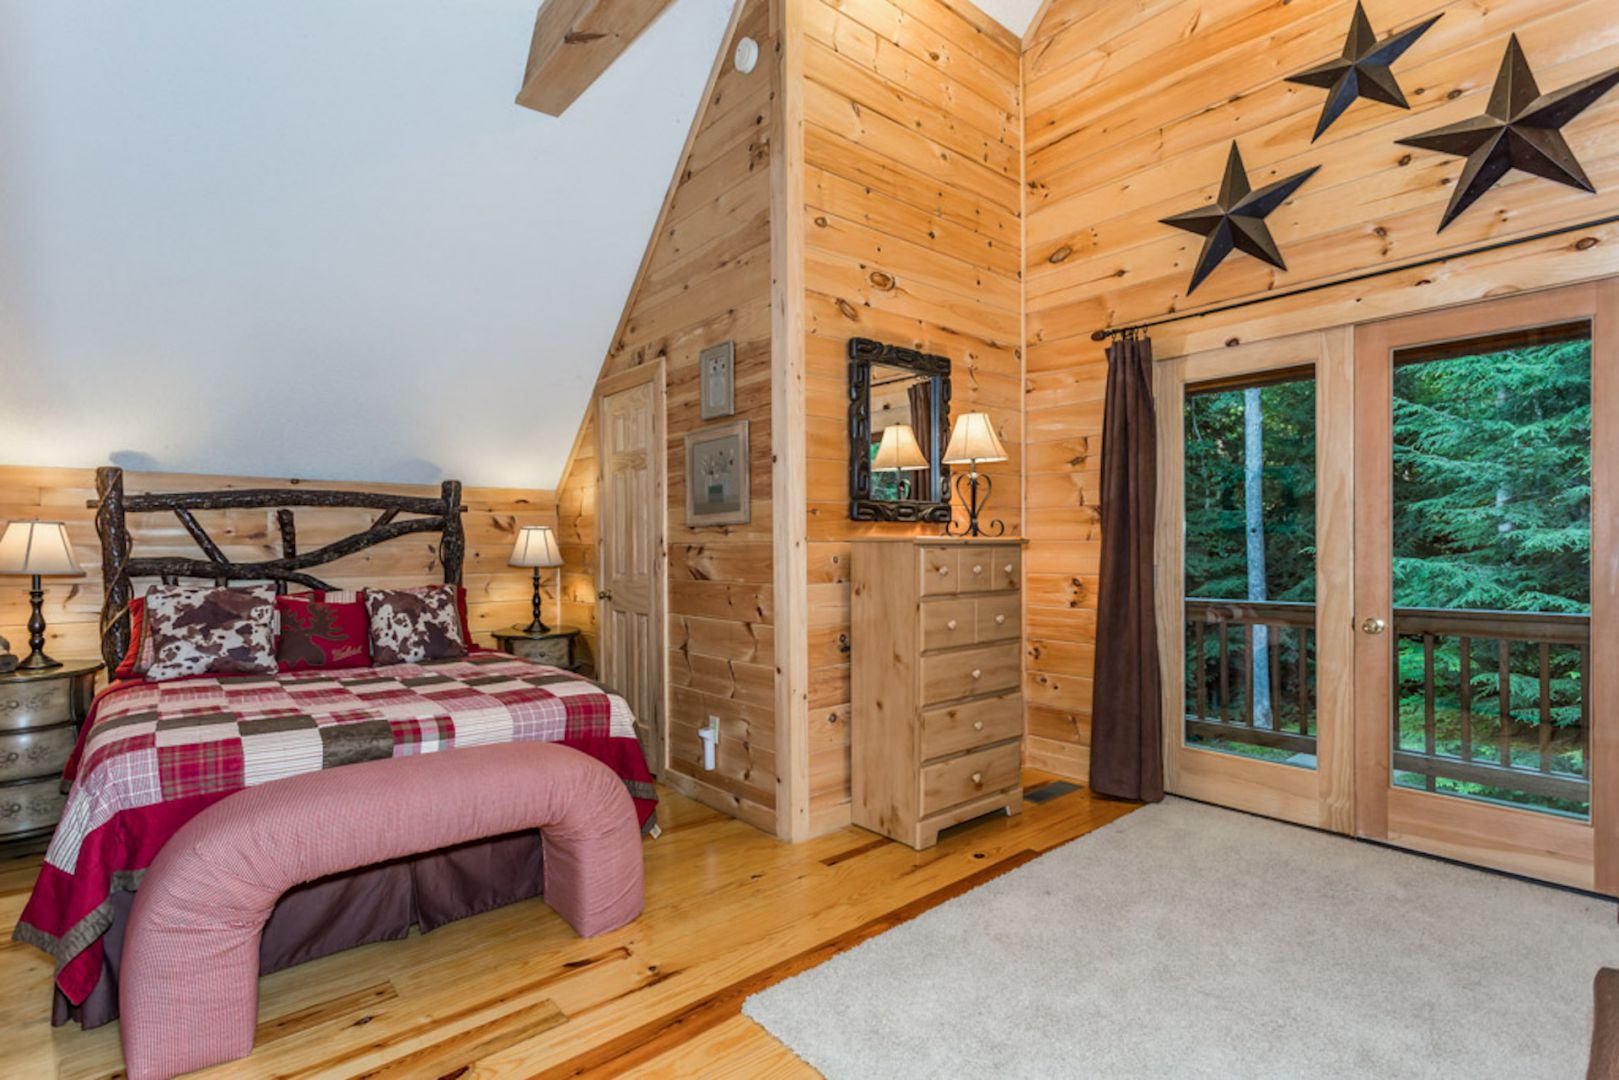 Twin Falls Rental Cabin Cuddle Up Cabin Rentals